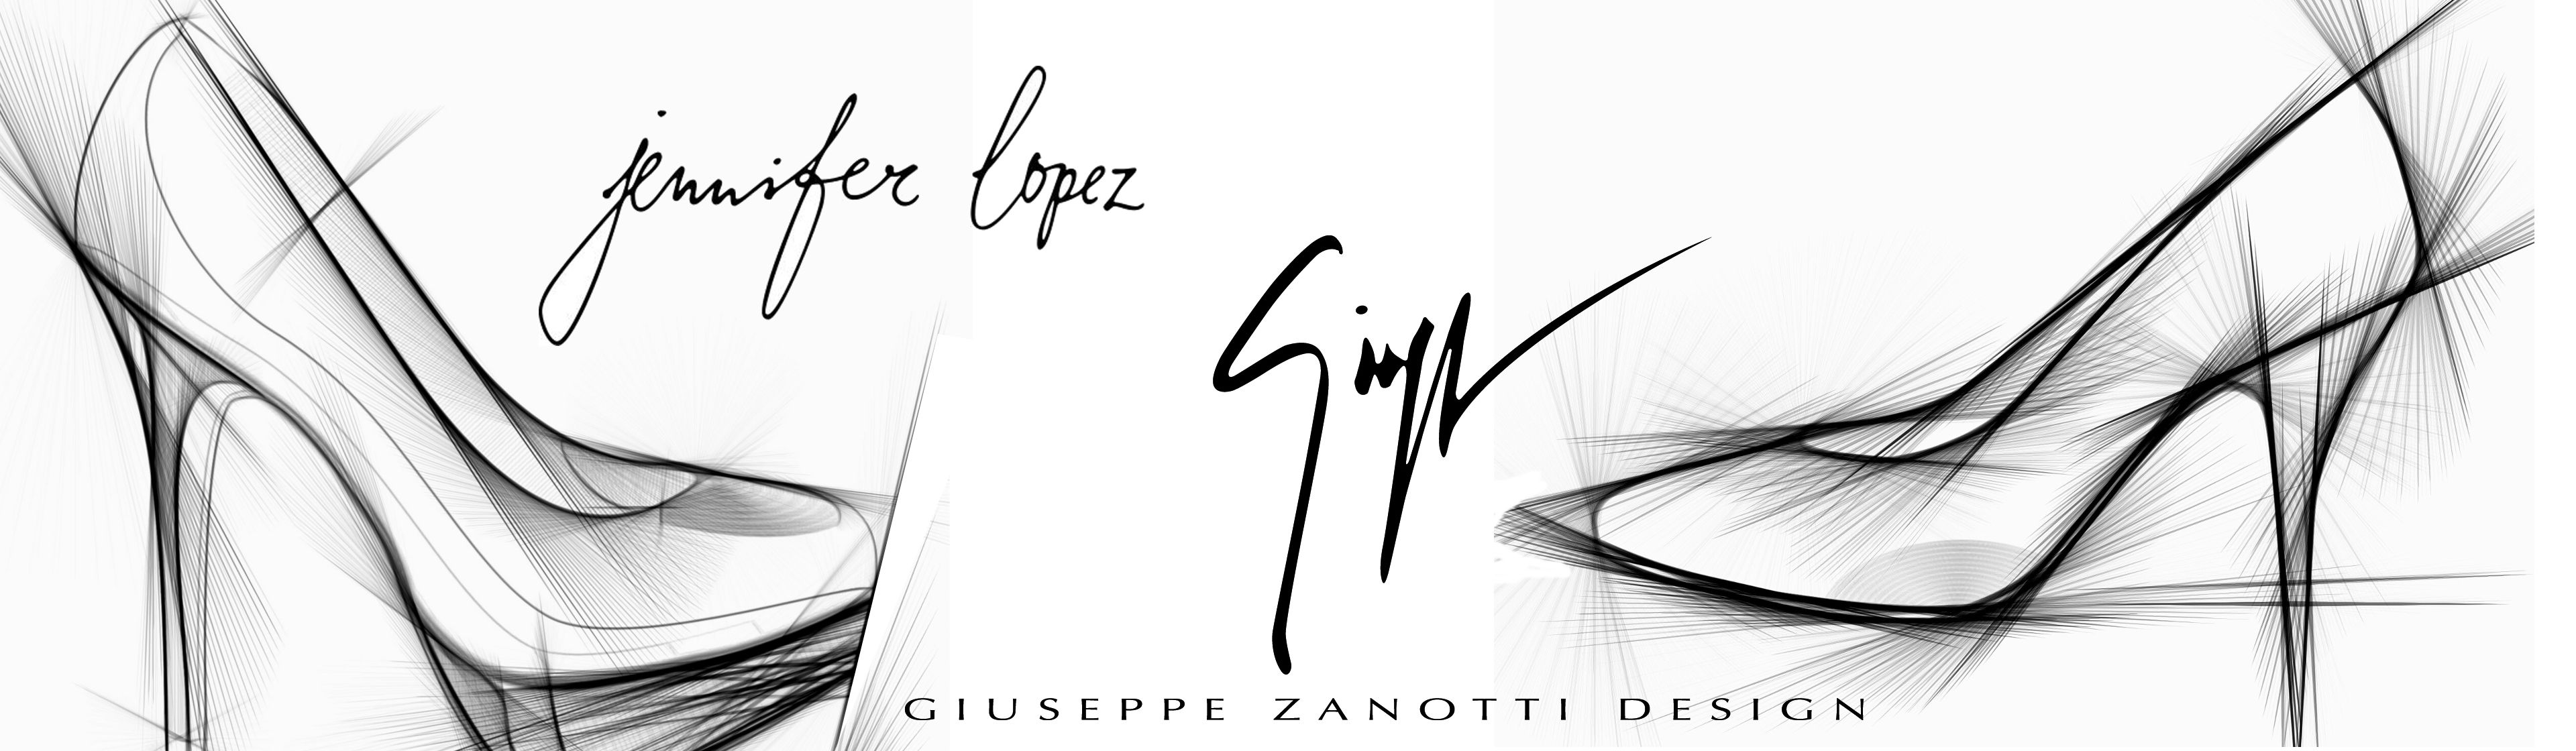 Jennifer Lopez and Giuseppe Zanotti Join Forces